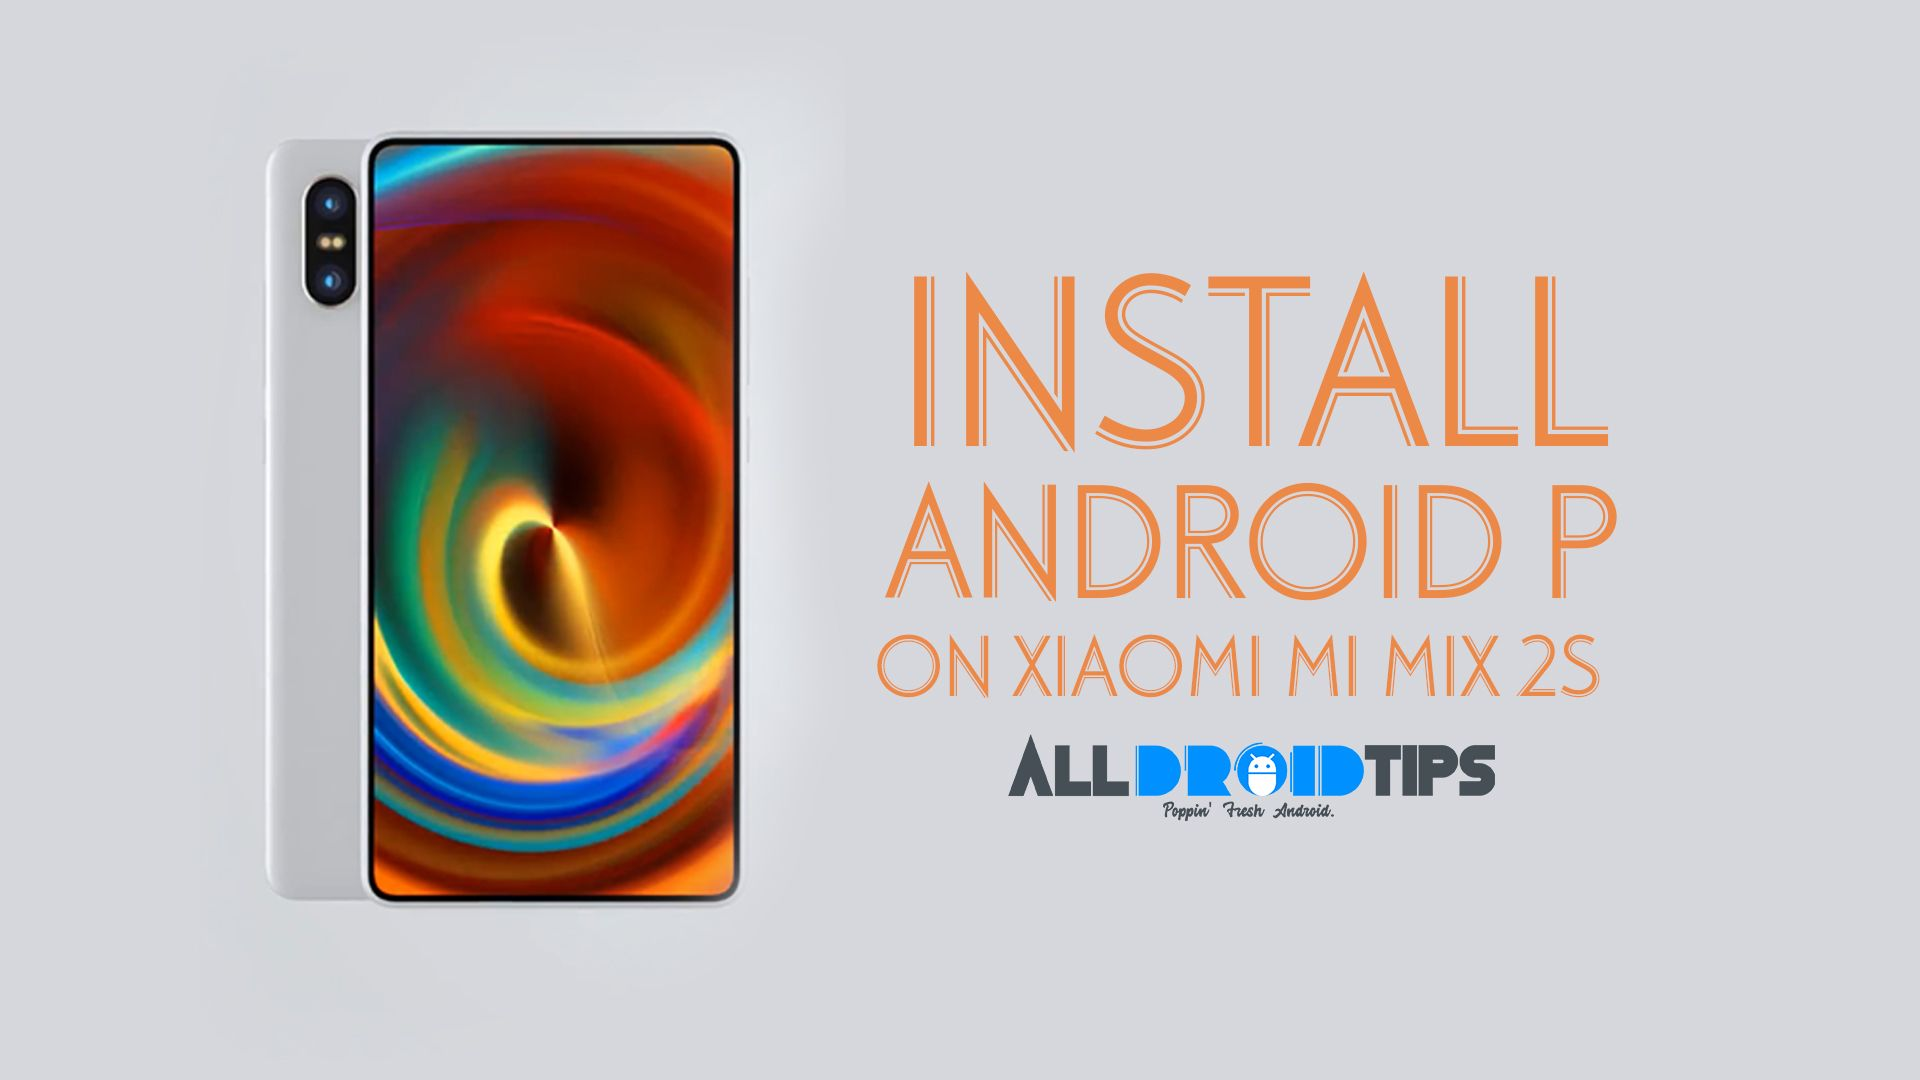 Follow below guide to Download and Install Android 9 Pie on Xiaomi